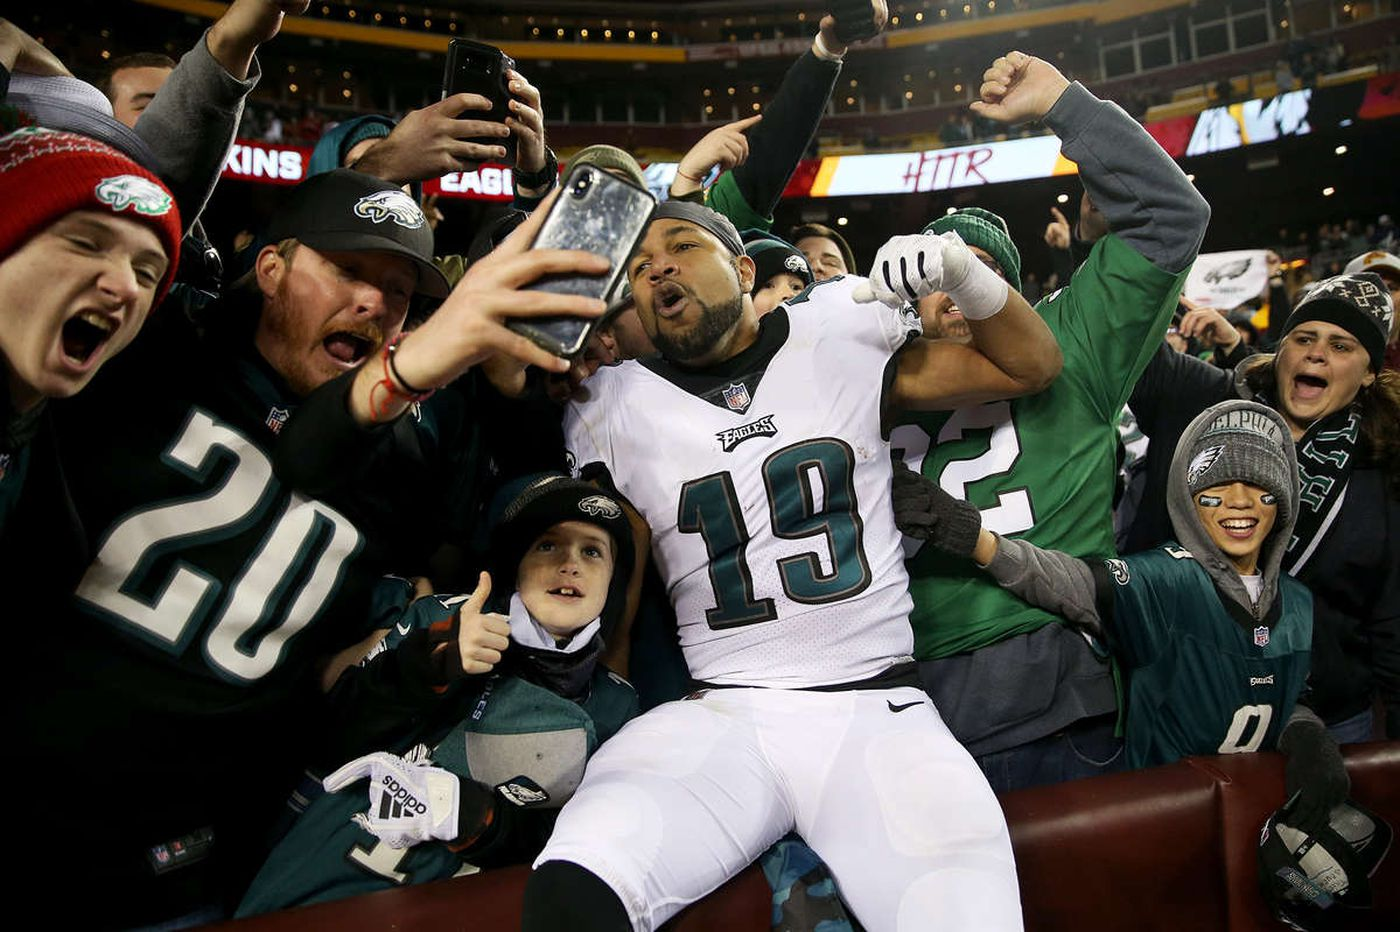 At FedEx Field, Eagles faithful convert to Bears fans for one game | Marcus Hayes